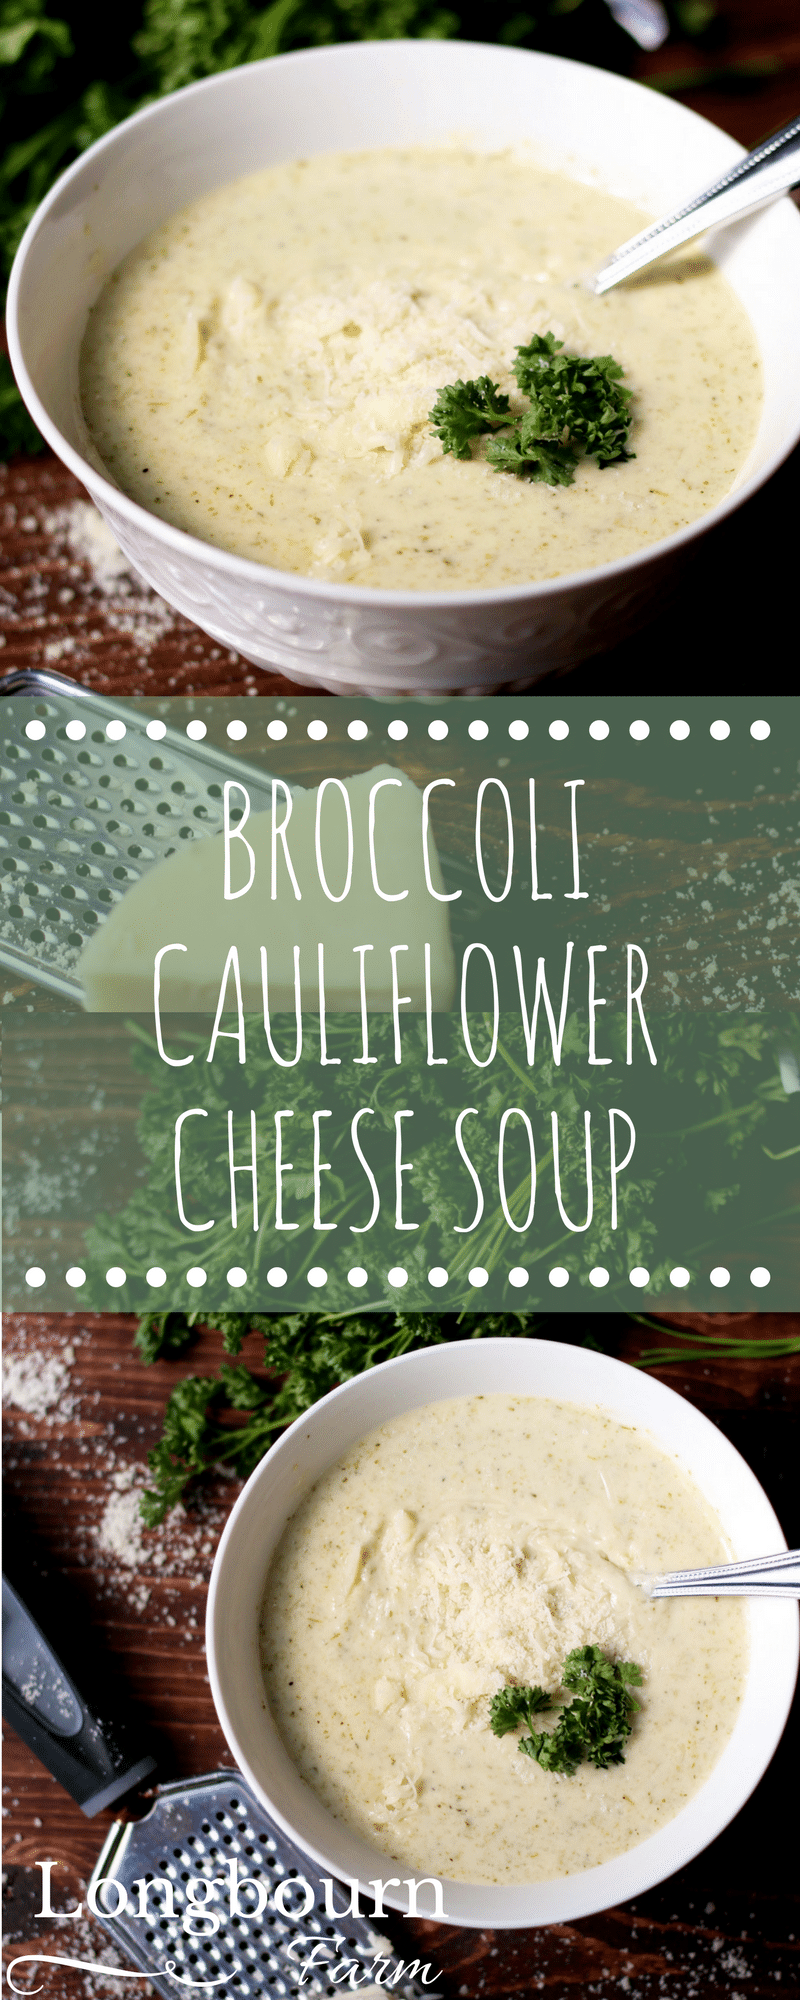 Cheesy broccoli and cauliflower soup is creamy, and packed with cauliflower and broccoli! Ready in just 30 minutes, this soup will be an instant hit.